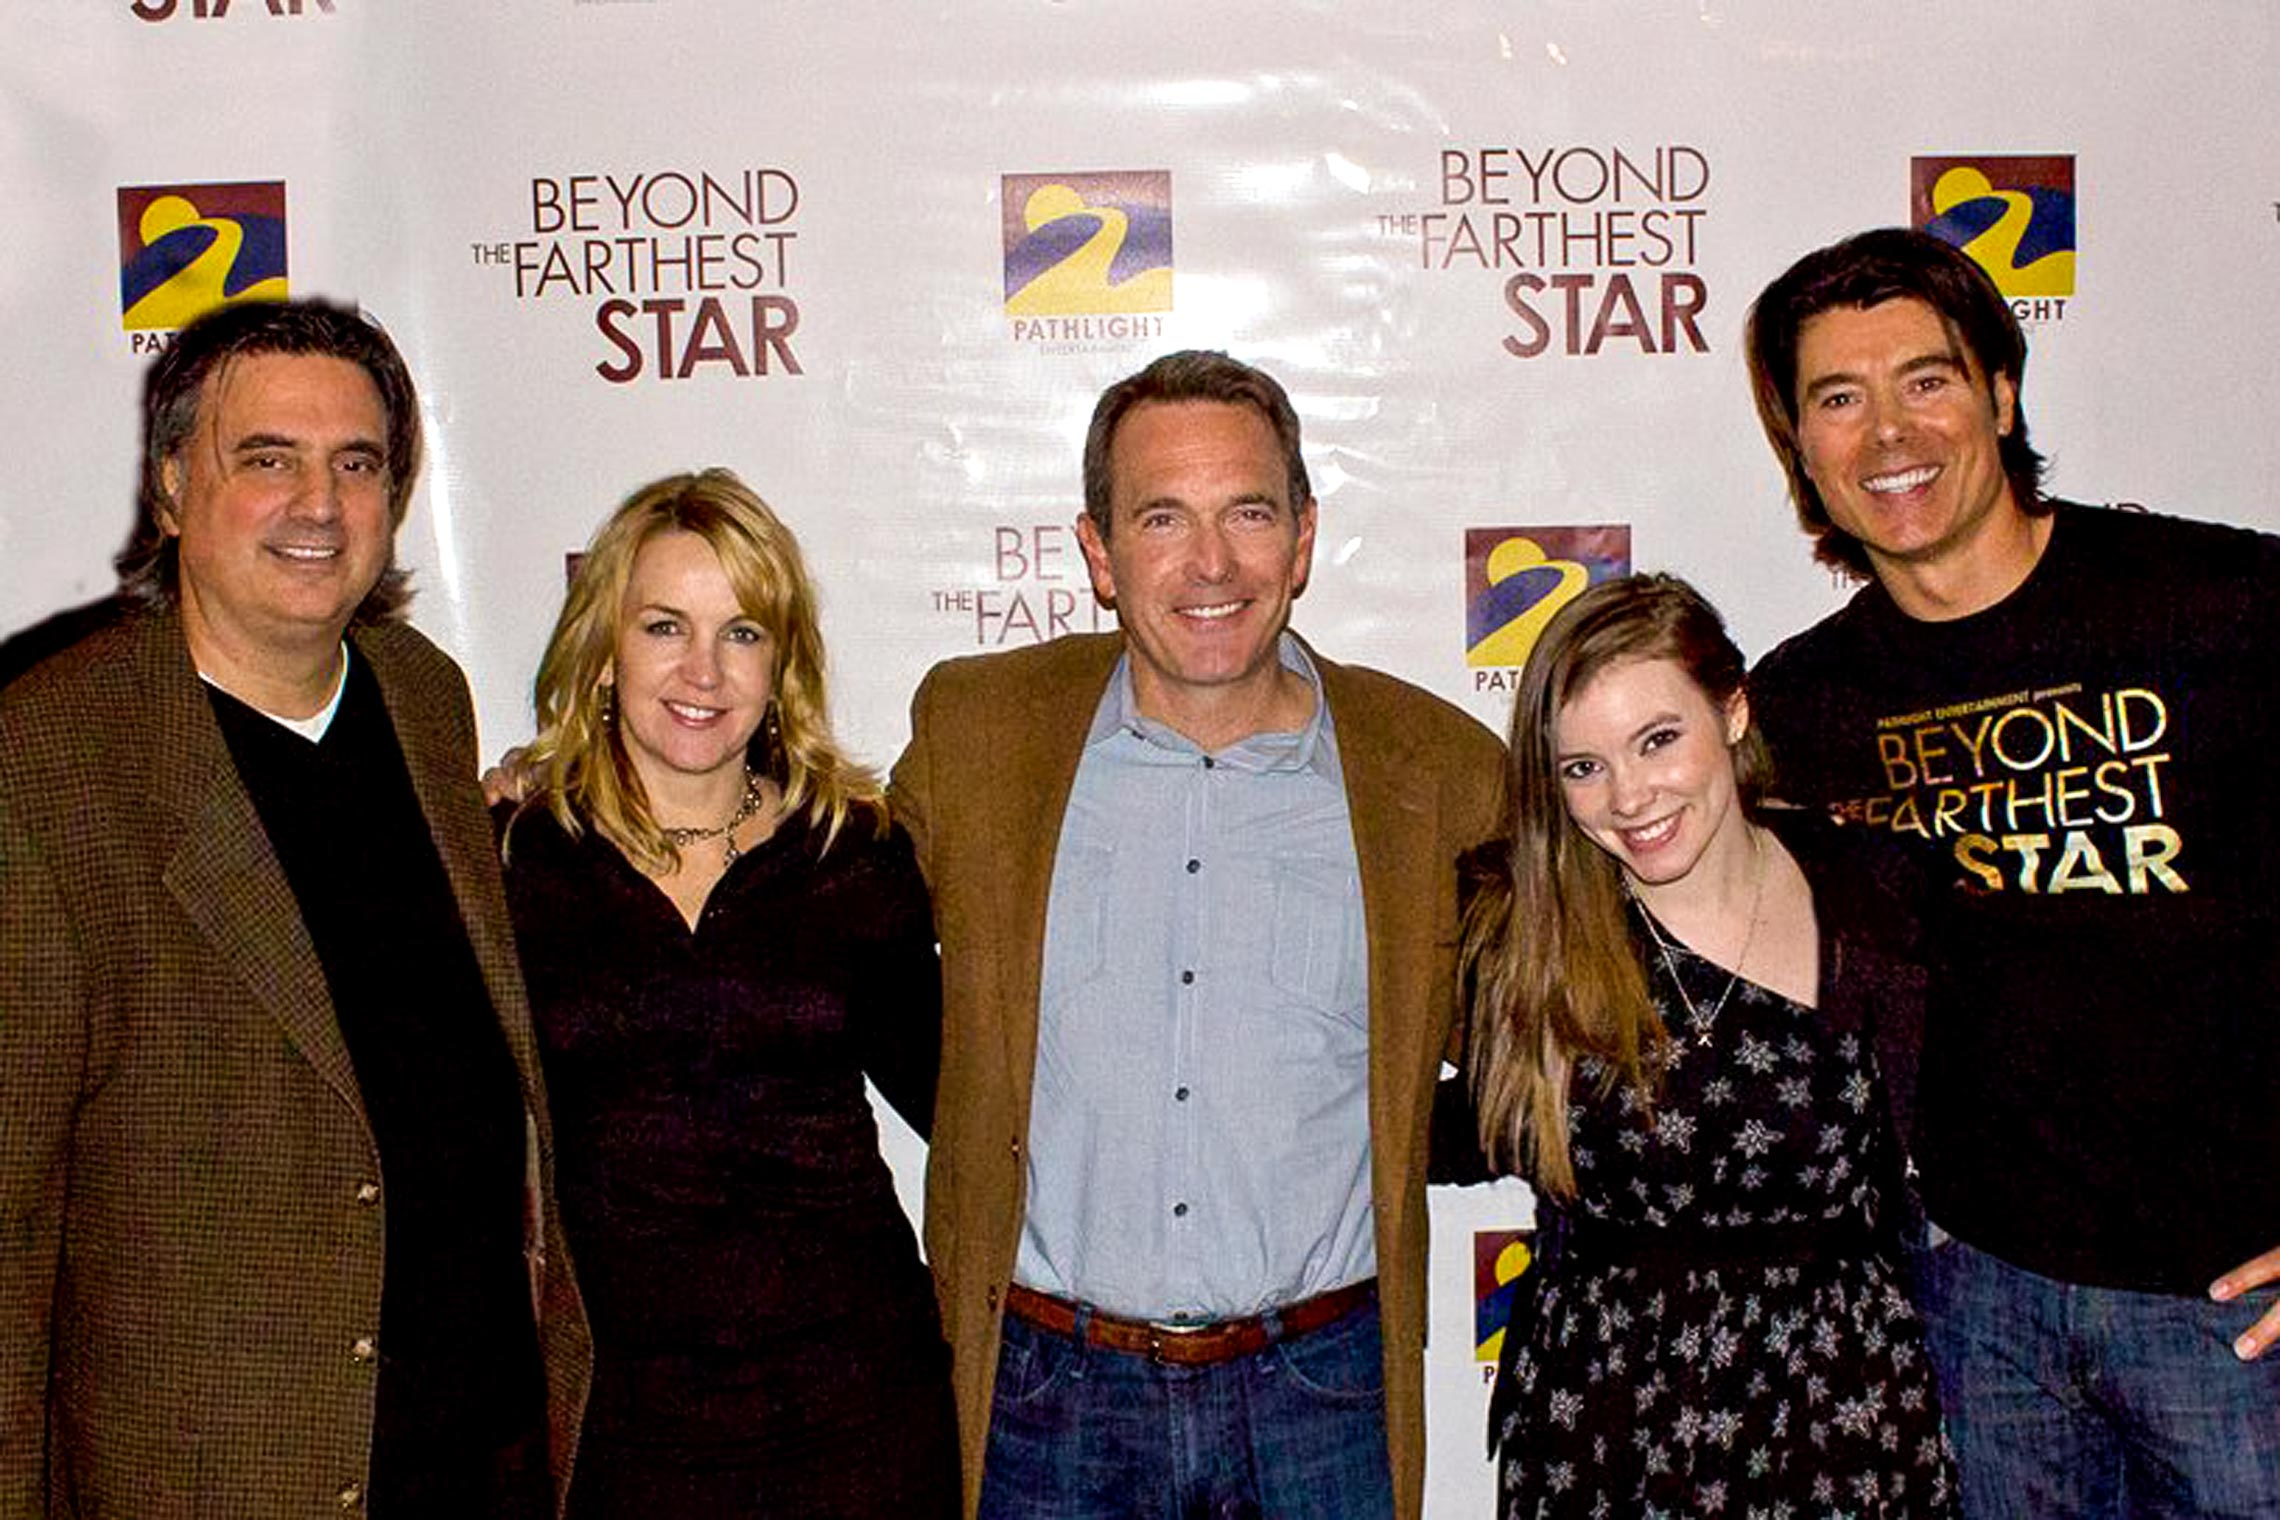 Cast shot with director, Andrew Librizzi, Renee O'Connor, Todd Terry, Cherami Leigh and Benjamin Dane.